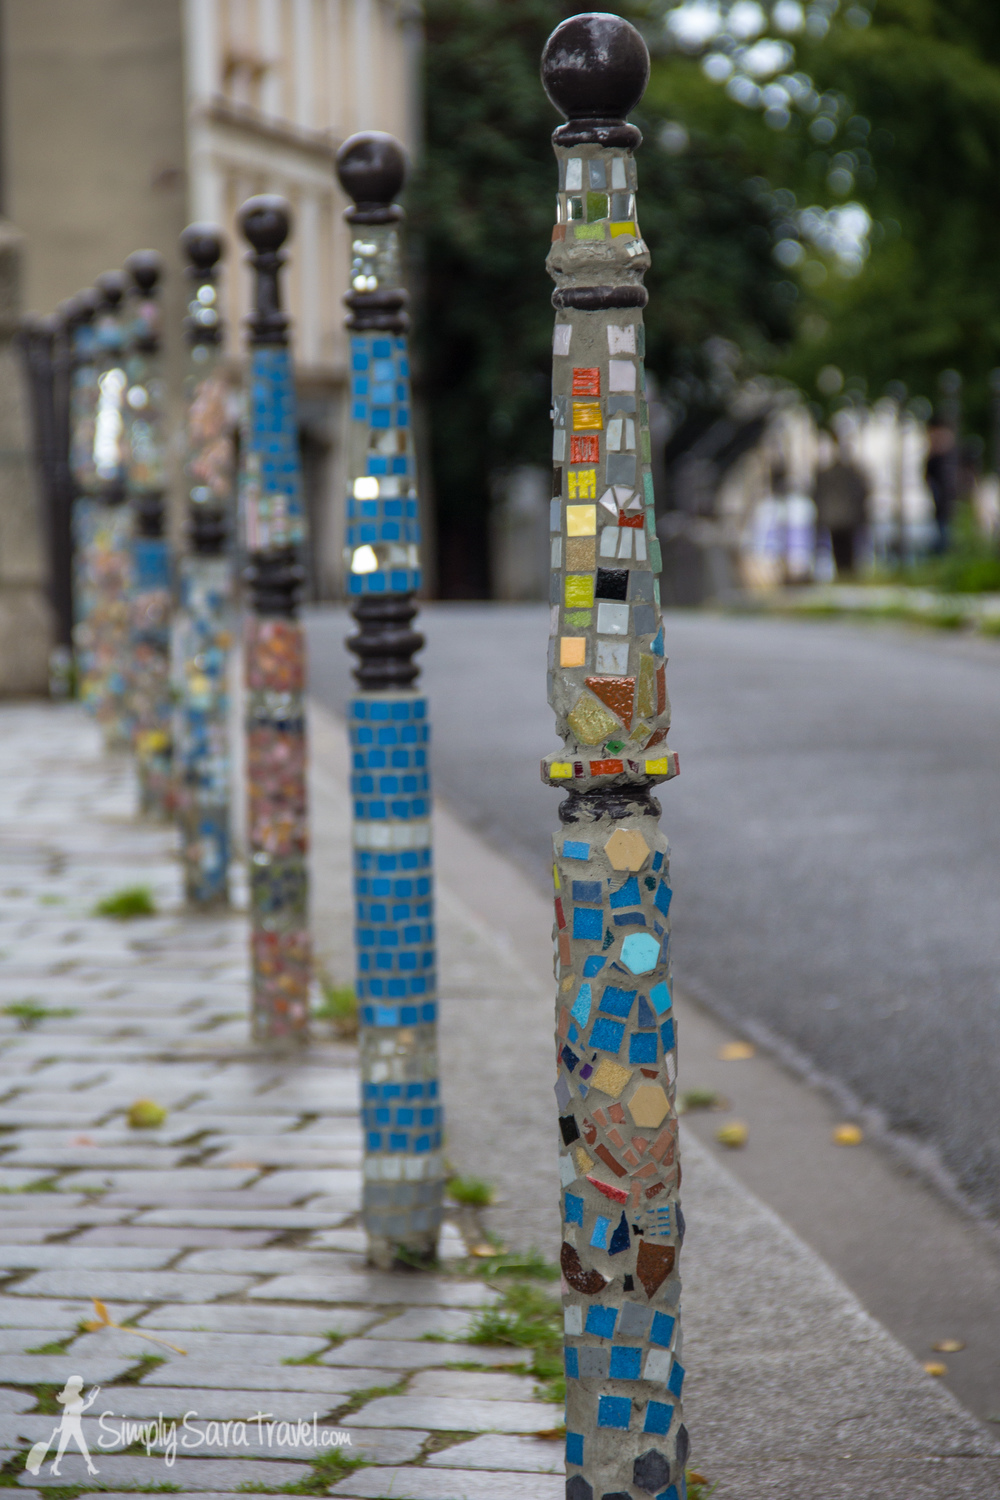 Colorful poles along the street by the viewing platform